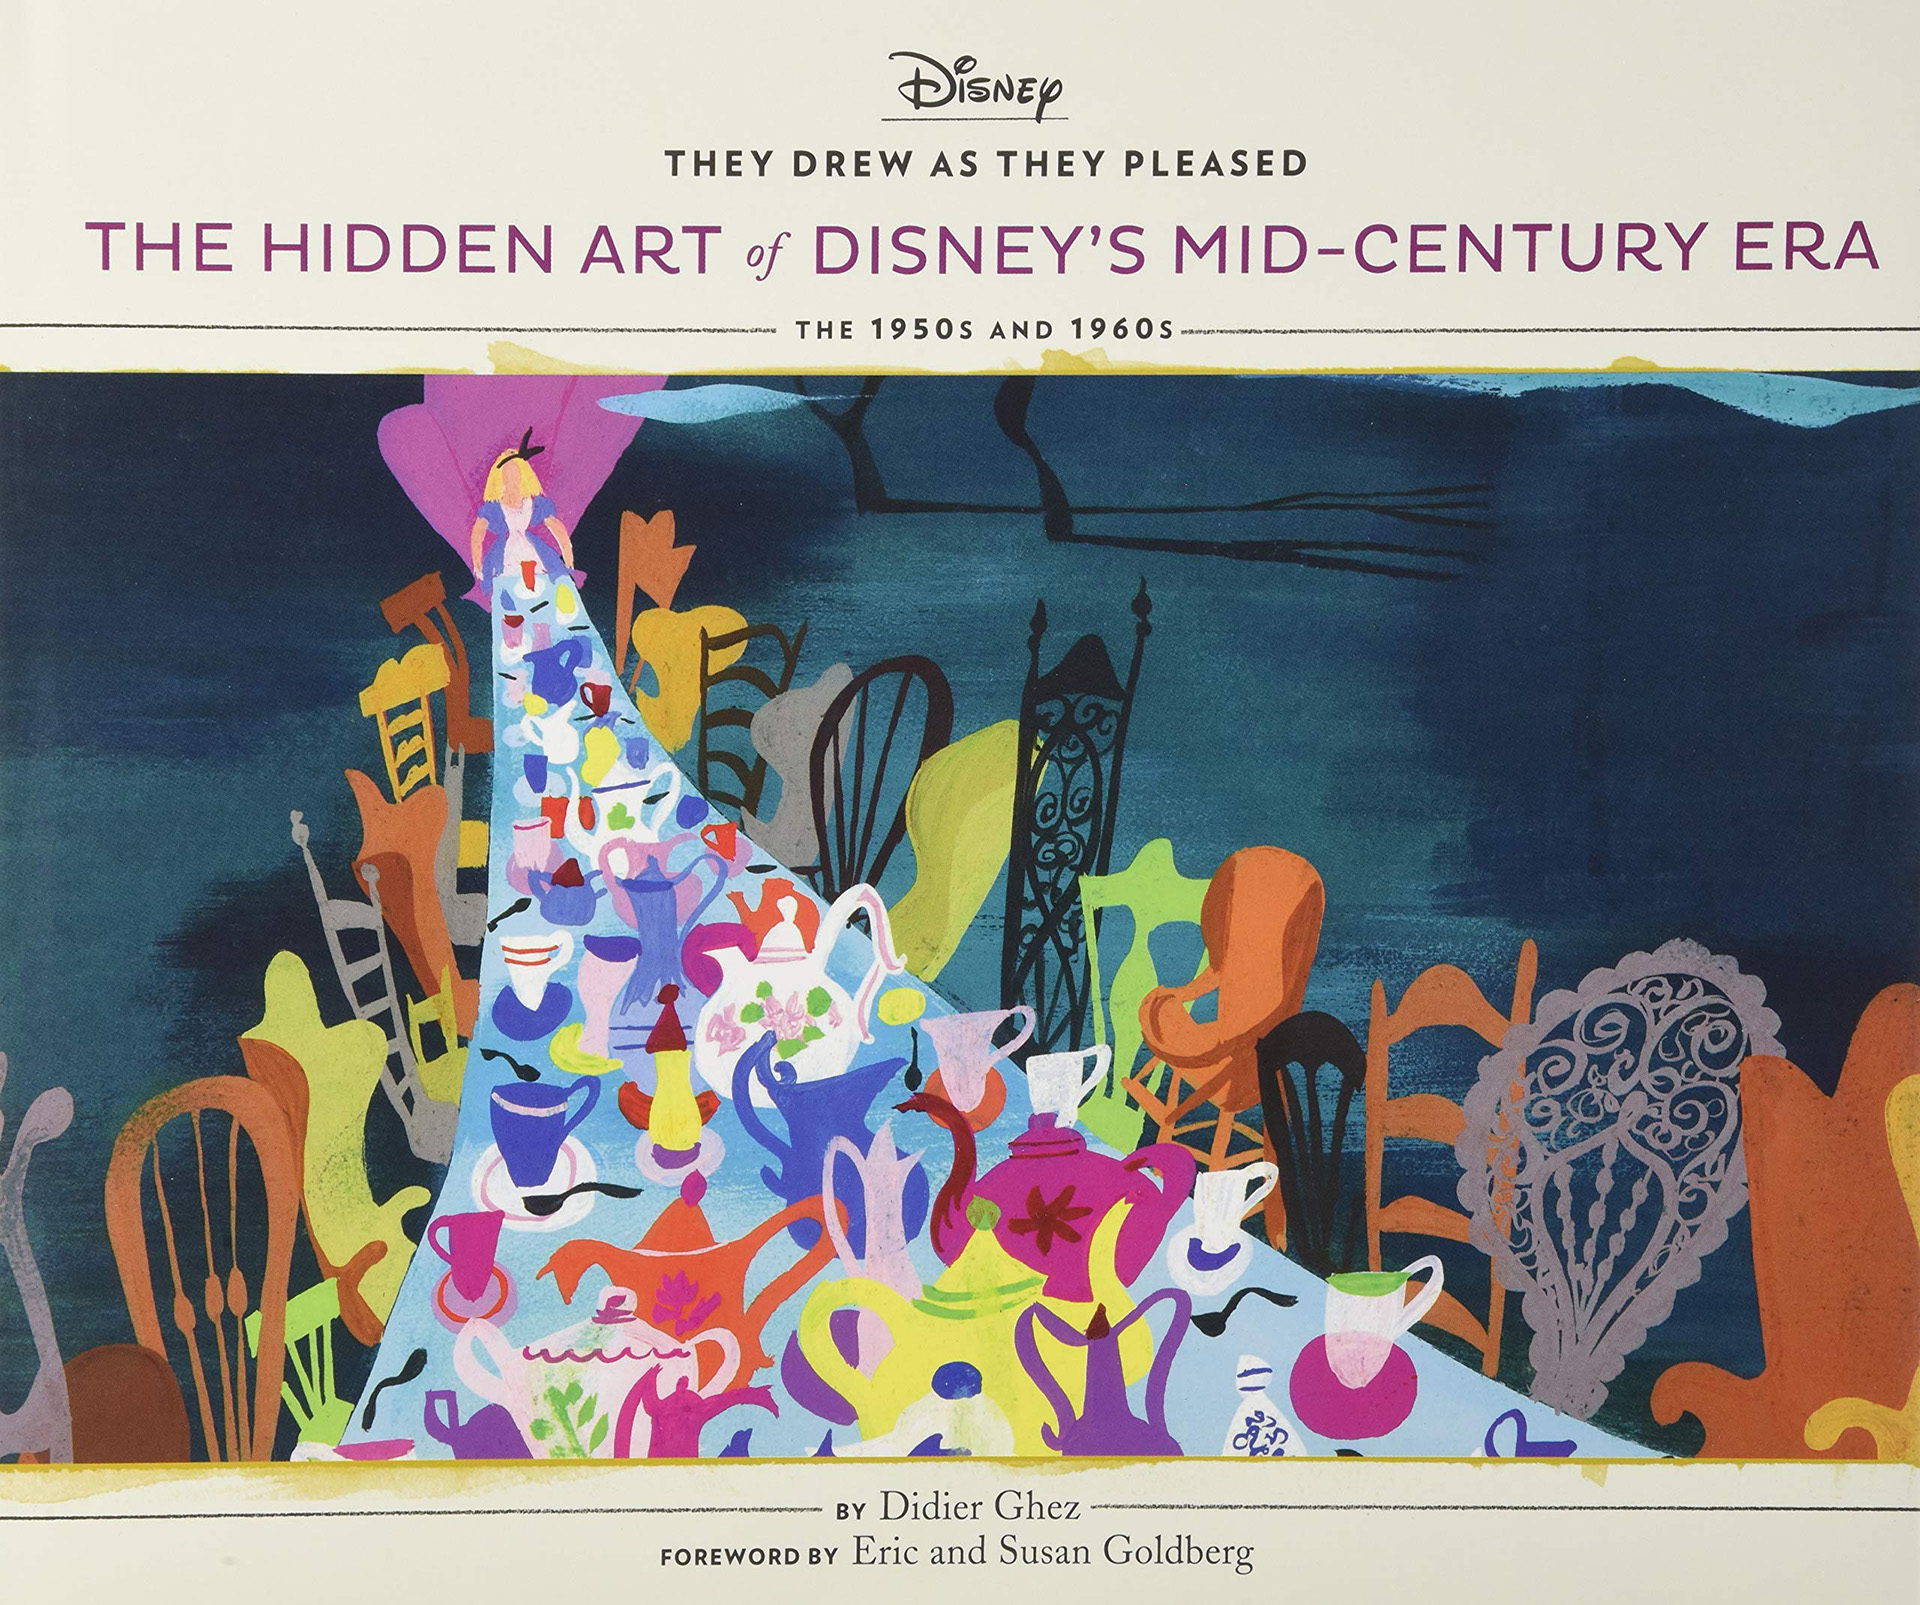 cover They Drew as they Pleased. The Hidden Art of Disney's Mid-Century Era the 1950s and 1960s